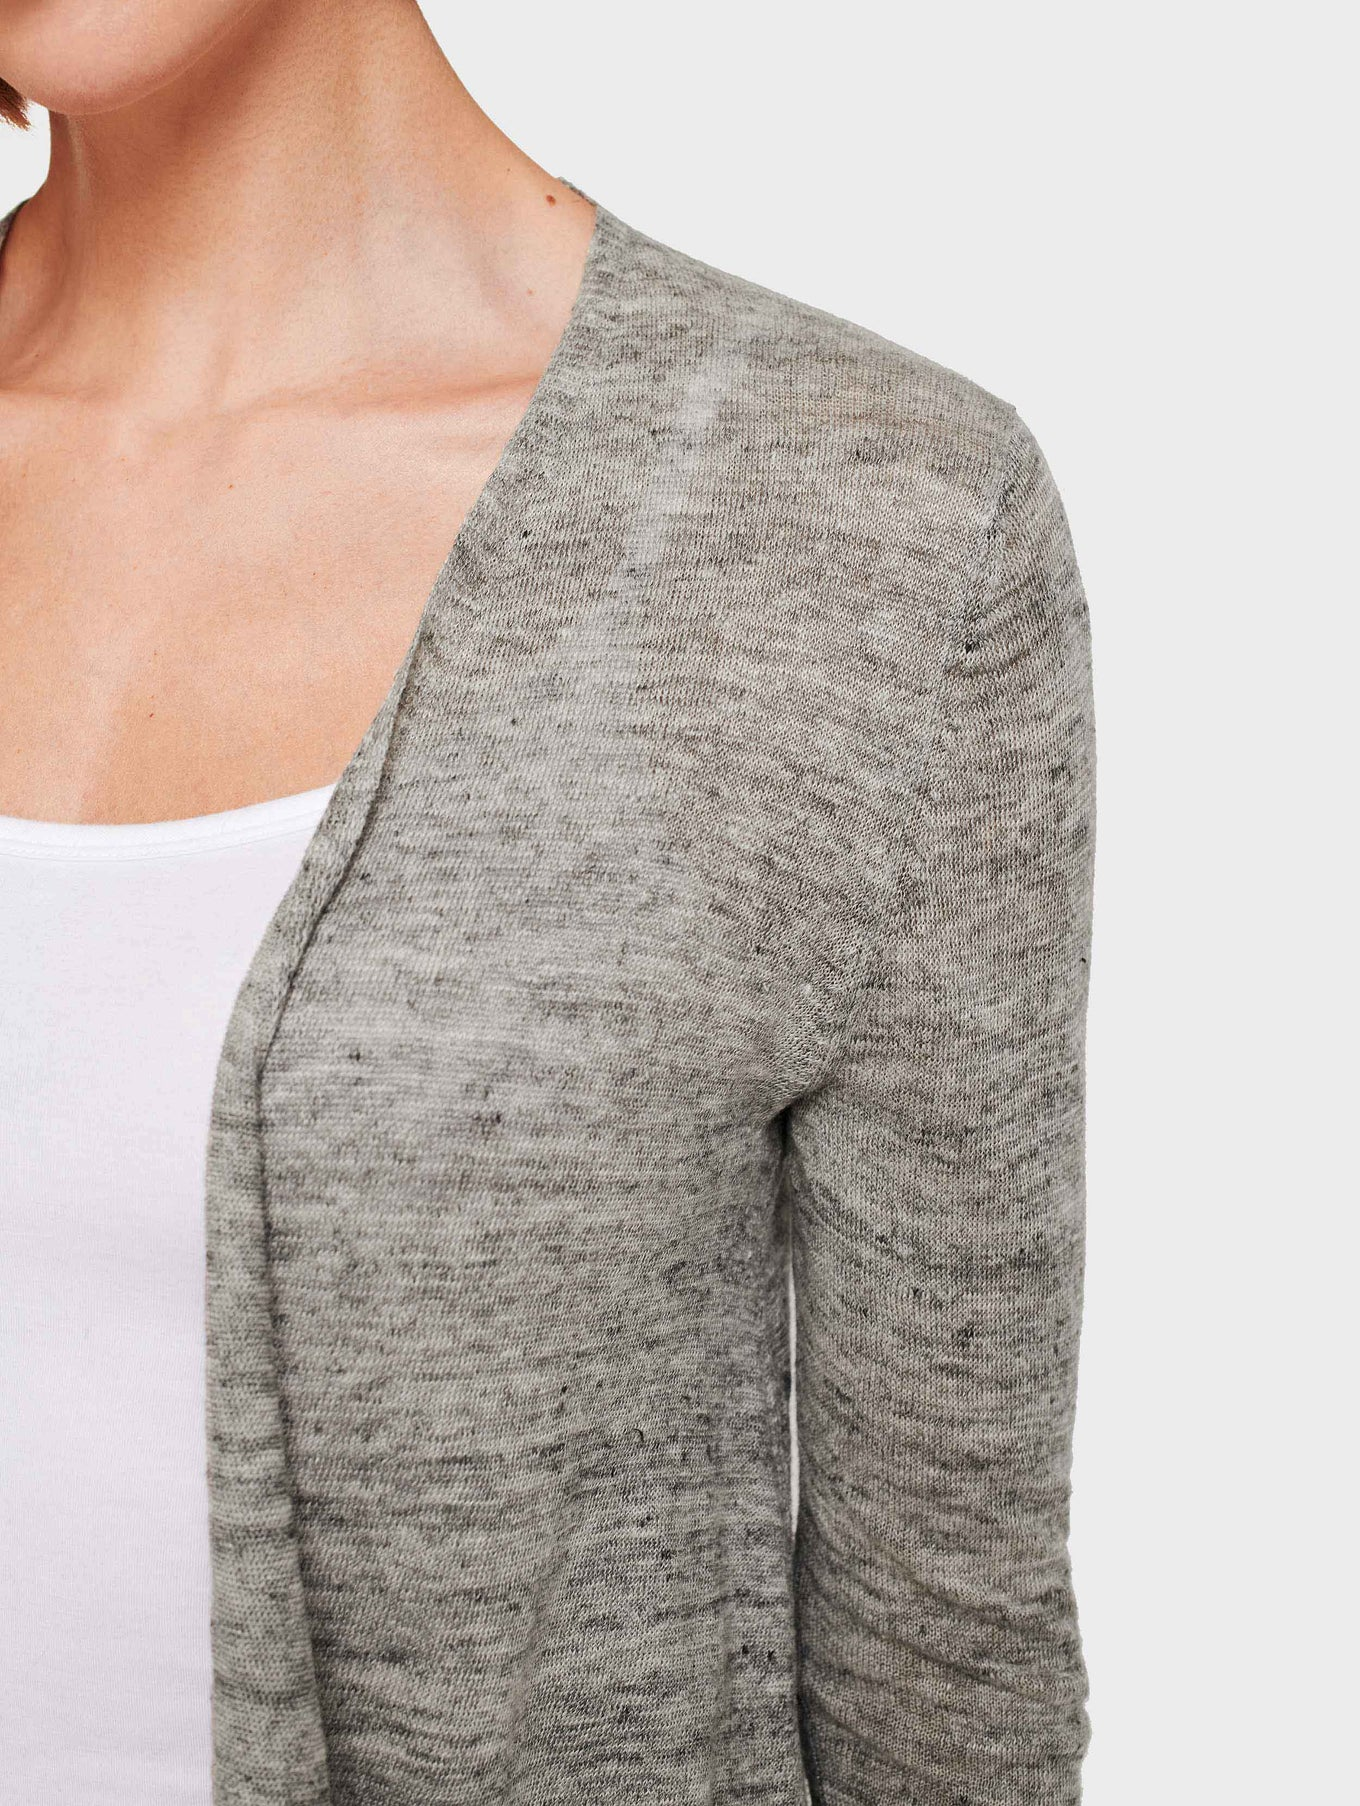 Linen Cropped Swing Cardigan - Shadow Heather - Image 2